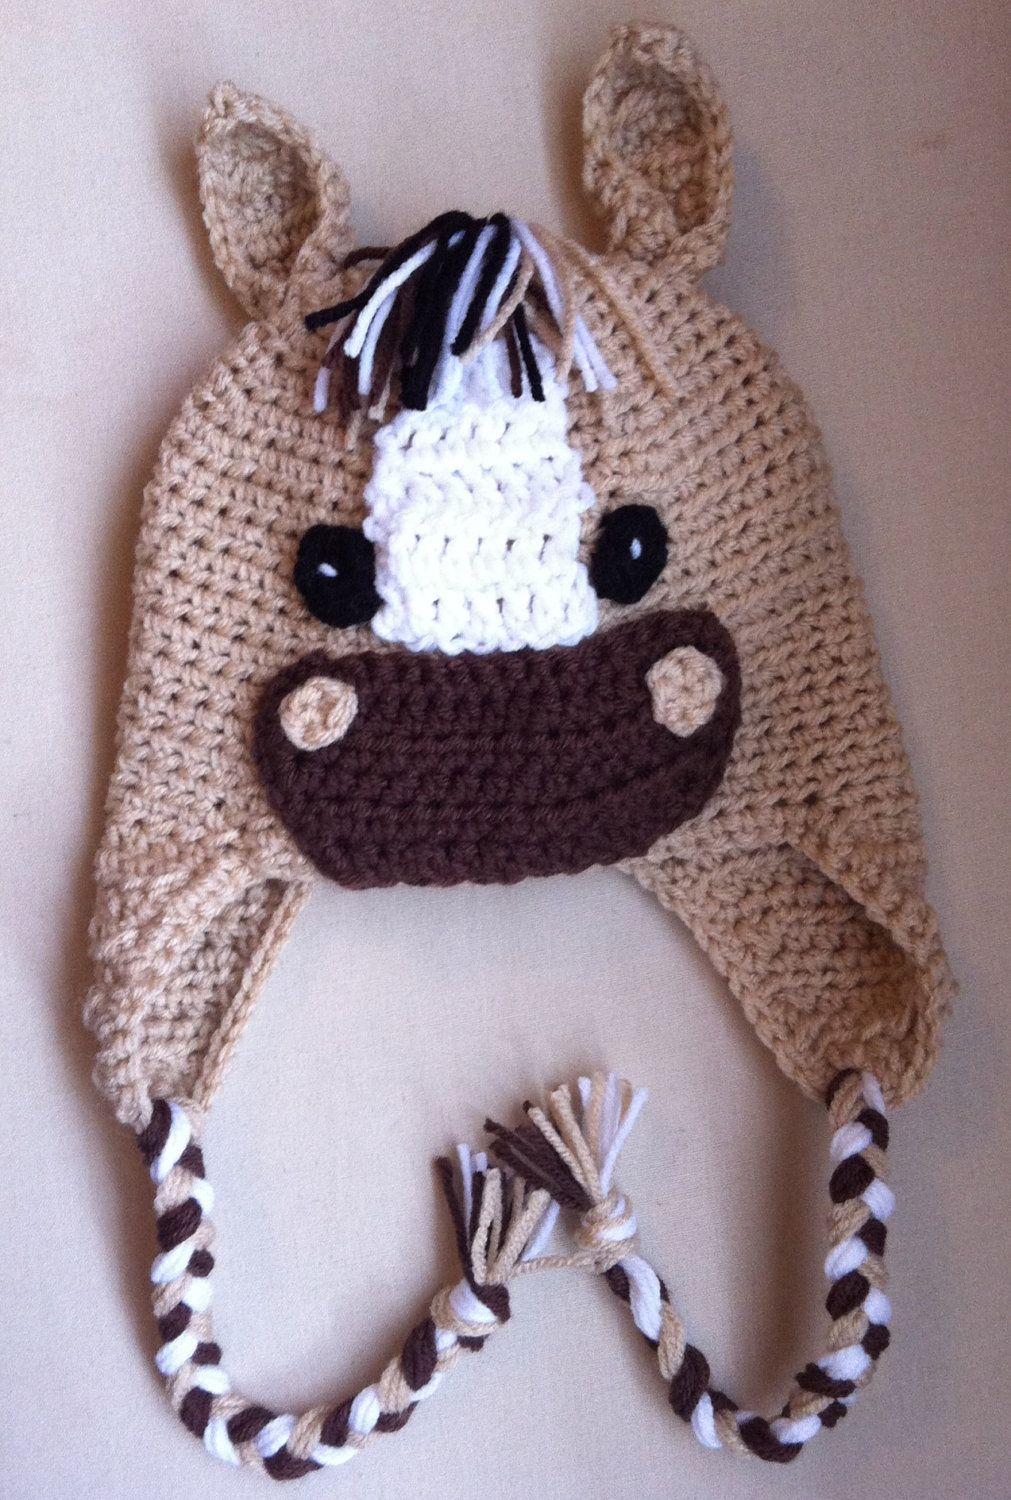 Crochet horse hat newborn photo prop baby crochet by walkercrochet